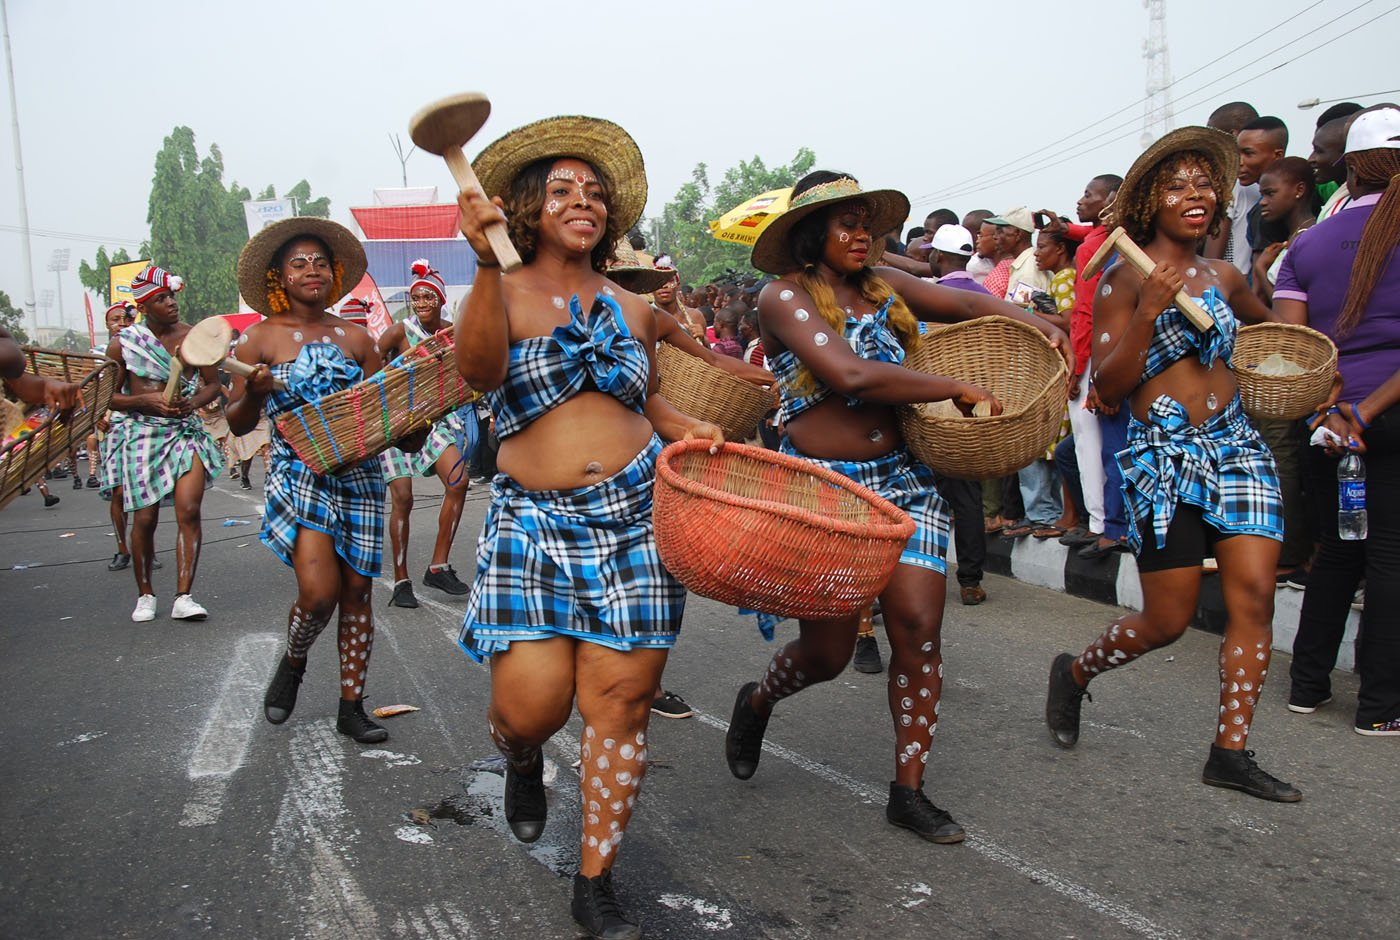 Members of Non-Competing Imo State Band during the Main Event of the 2017 Carnival Calabar in Cross River State Yesterday. Photo: Nwankpa Chijioke